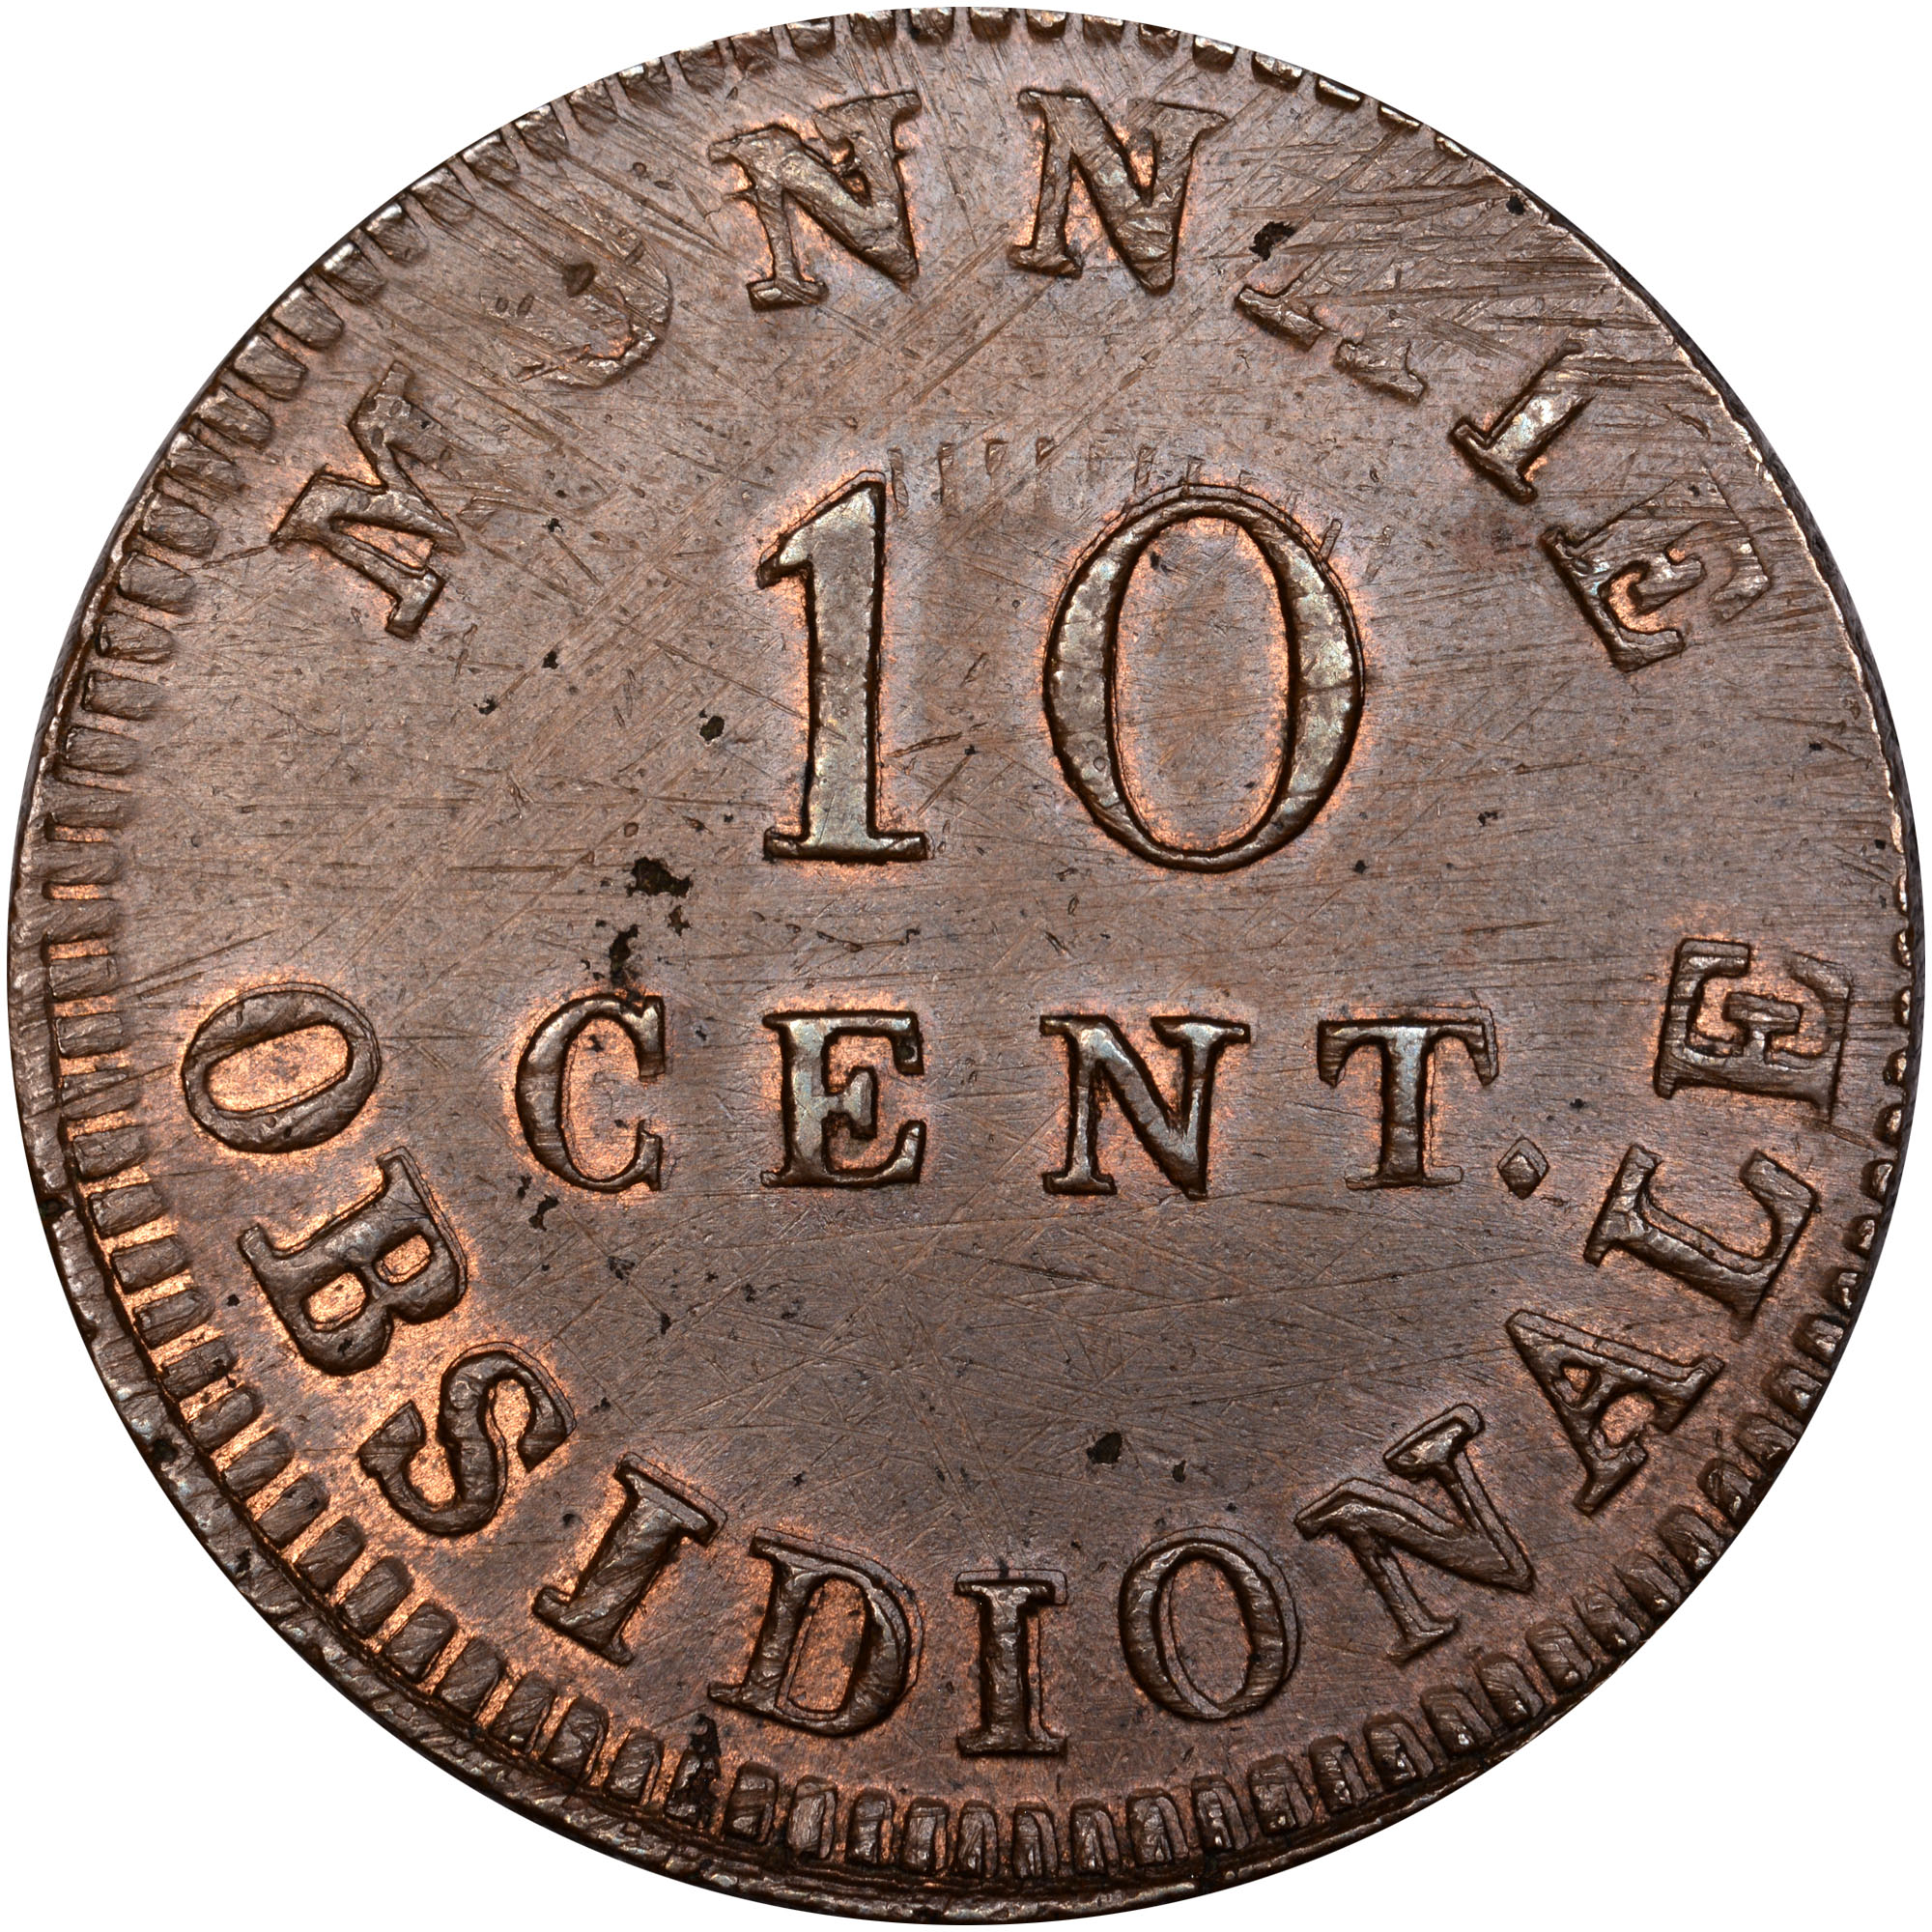 French States ANTWERP 10 Centimes reverse